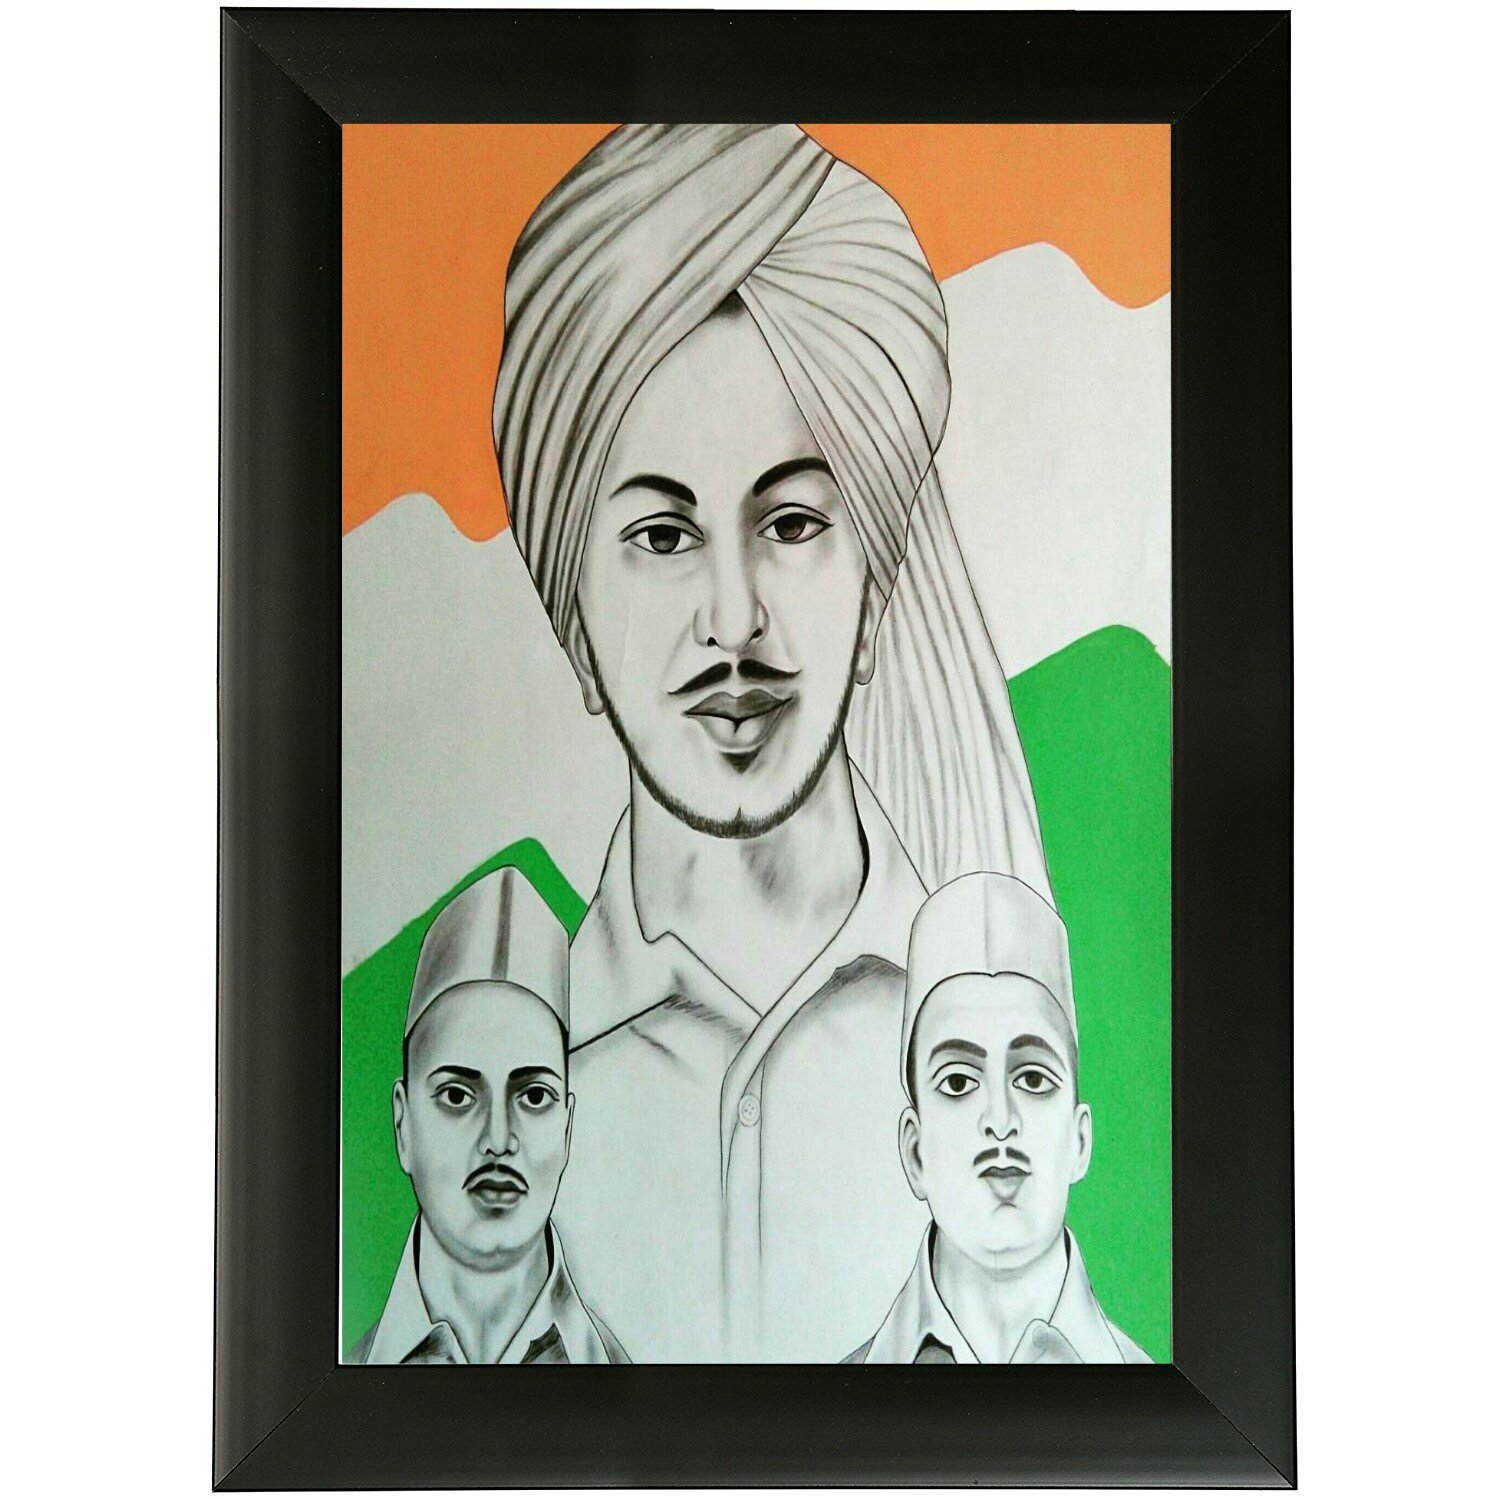 Buy Weird Road Independence Theme Flag Color Bhagat Singh Wooden Posters Size 12 X 18 Inch Online At Low Prices In India Amazon In